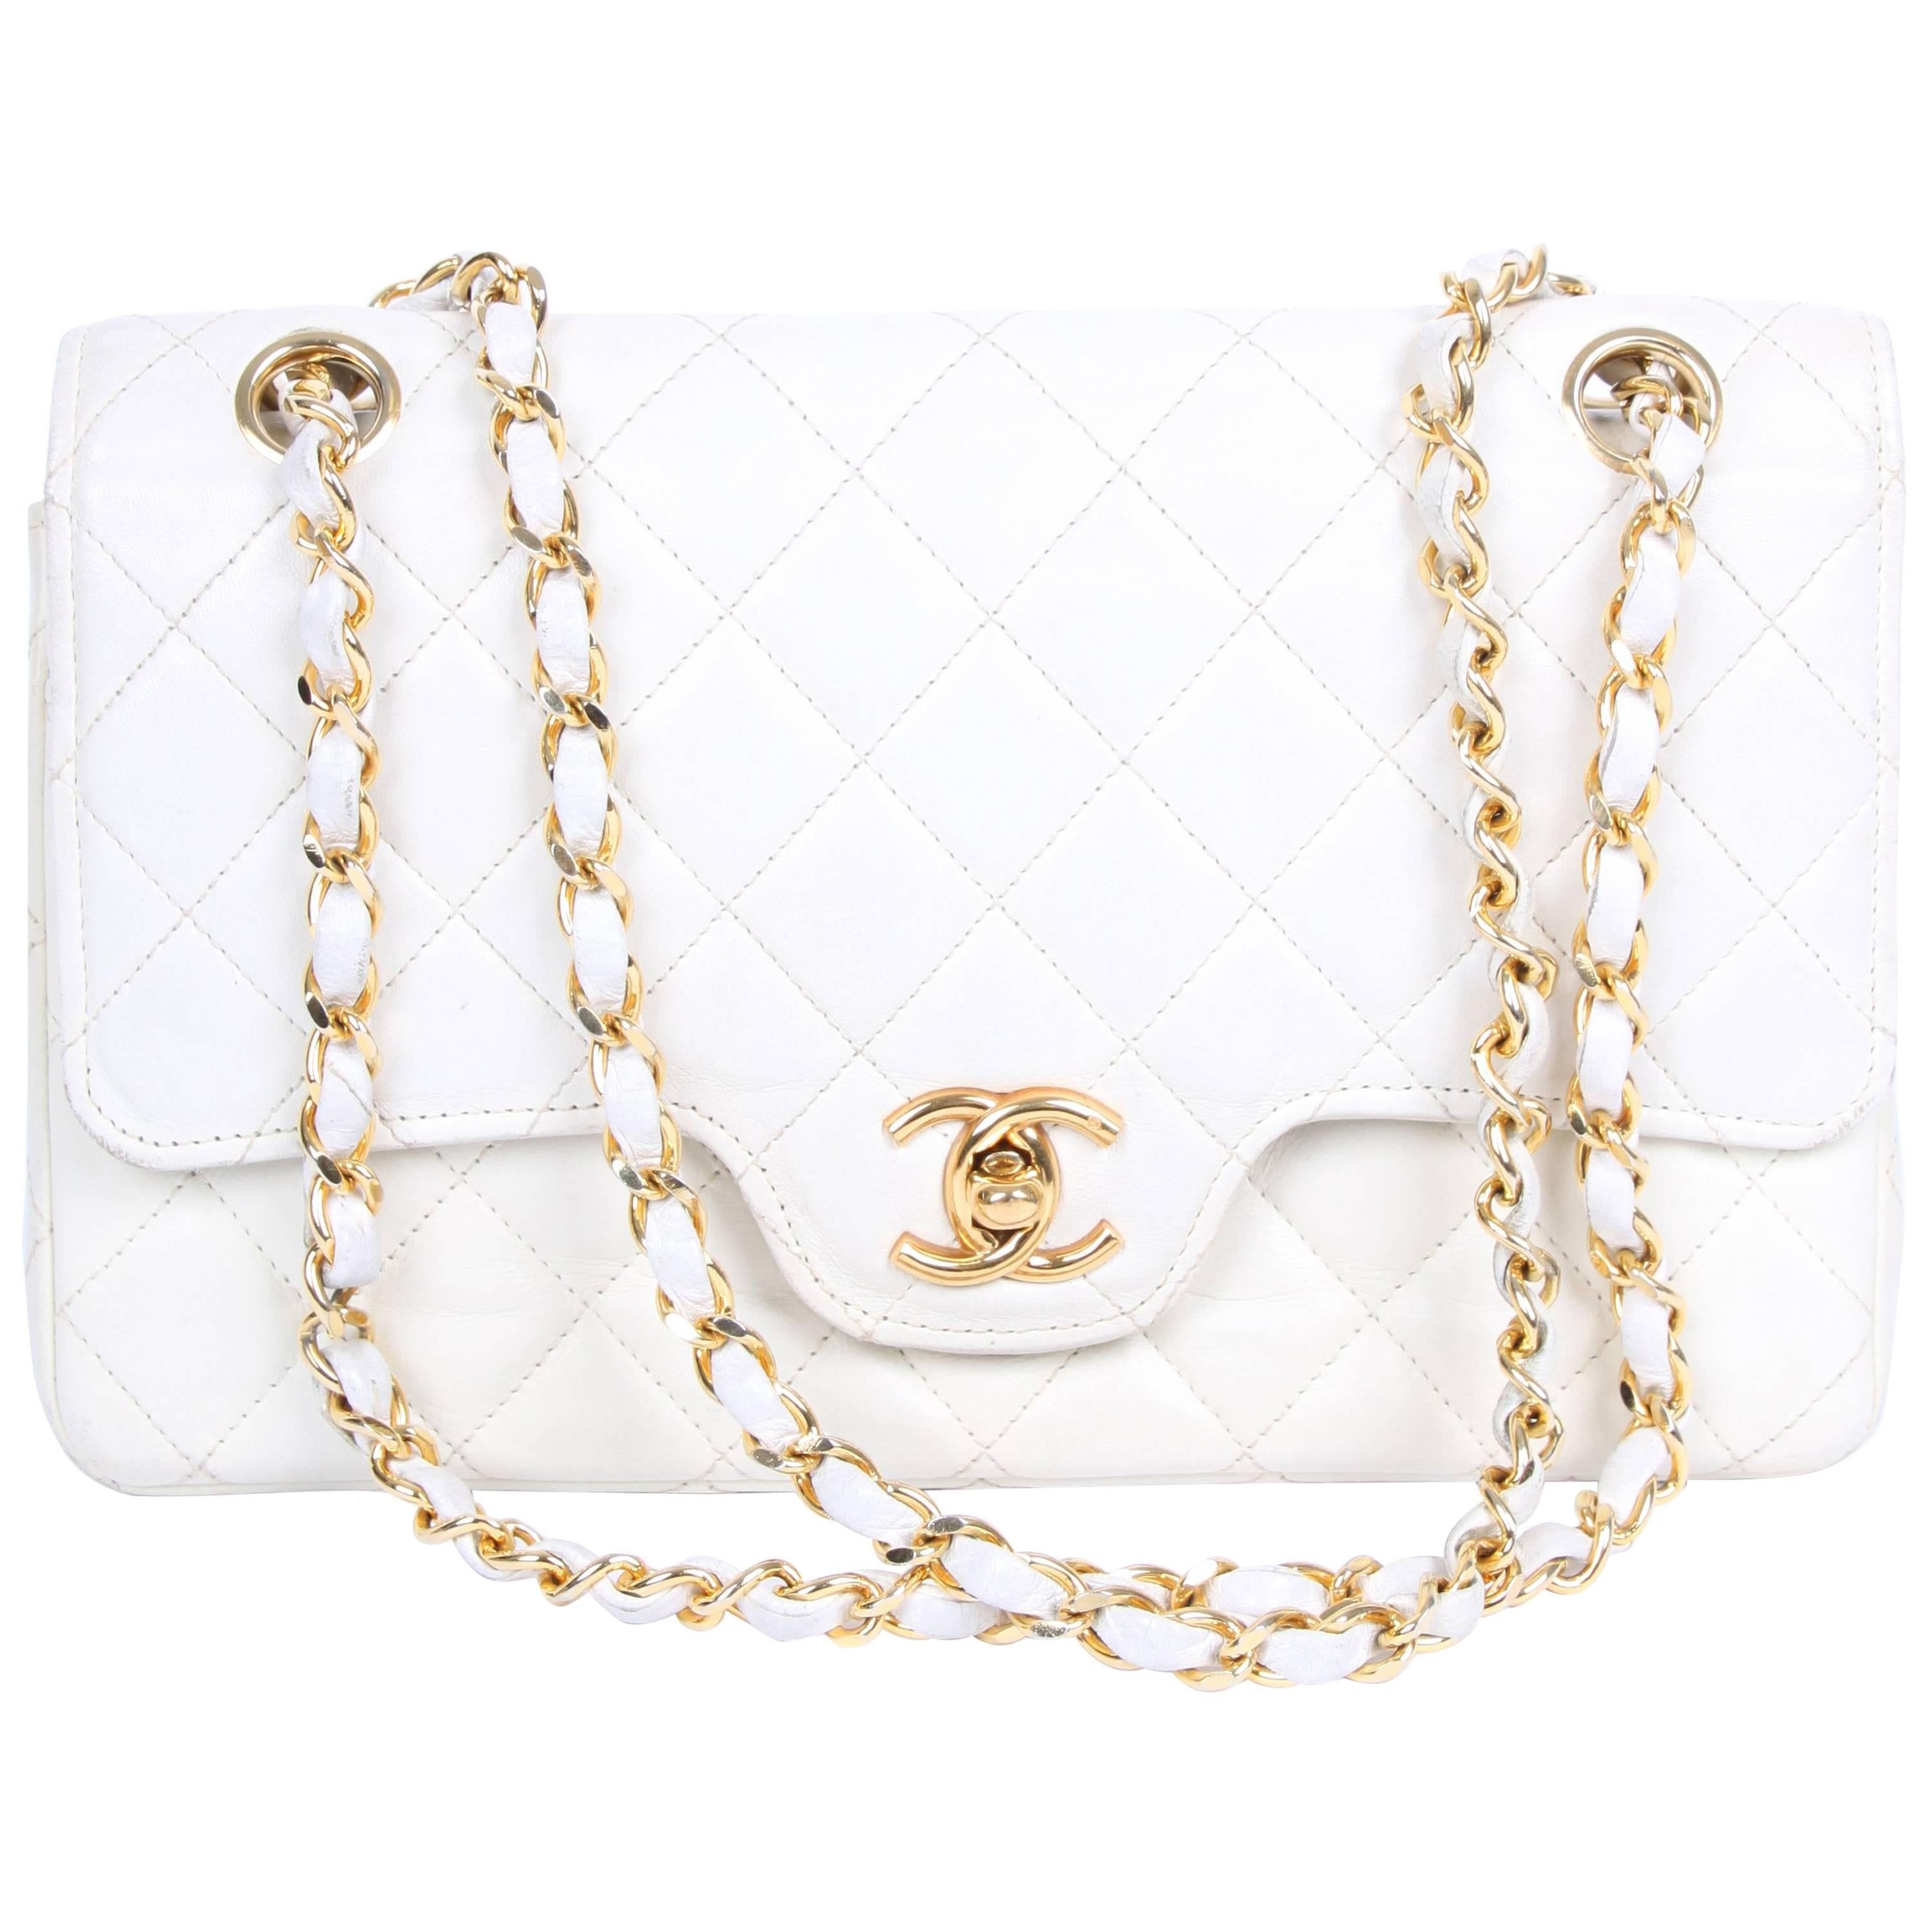 Chanel Vintage Double Flap Bag - ivory white at 1stdibs c3b60f9647598